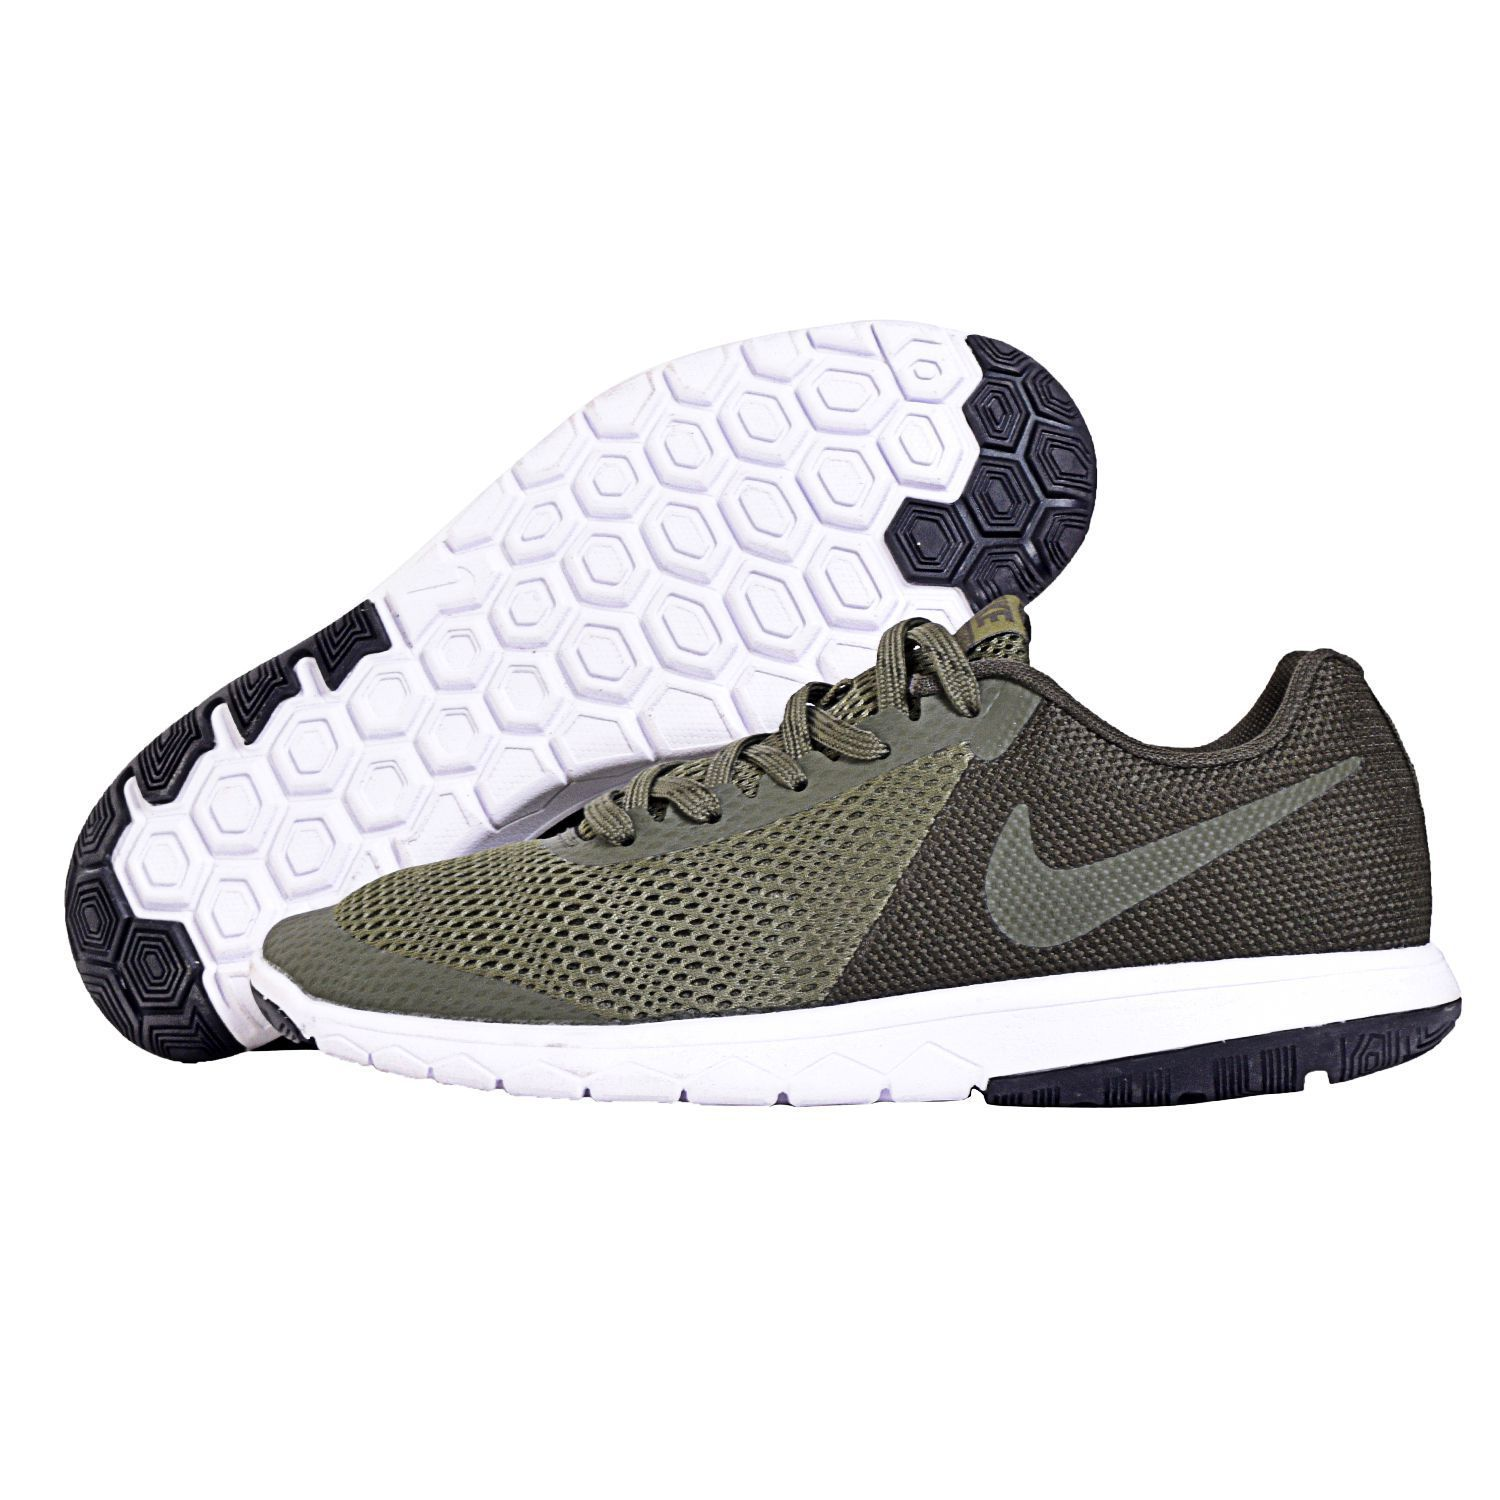 f229841fcaa7e Nike Flex Experience RN 5 Green Running Shoes - Buy Nike Flex Experience RN  5 Green Running Shoes Online at Best Prices in India on Snapdeal